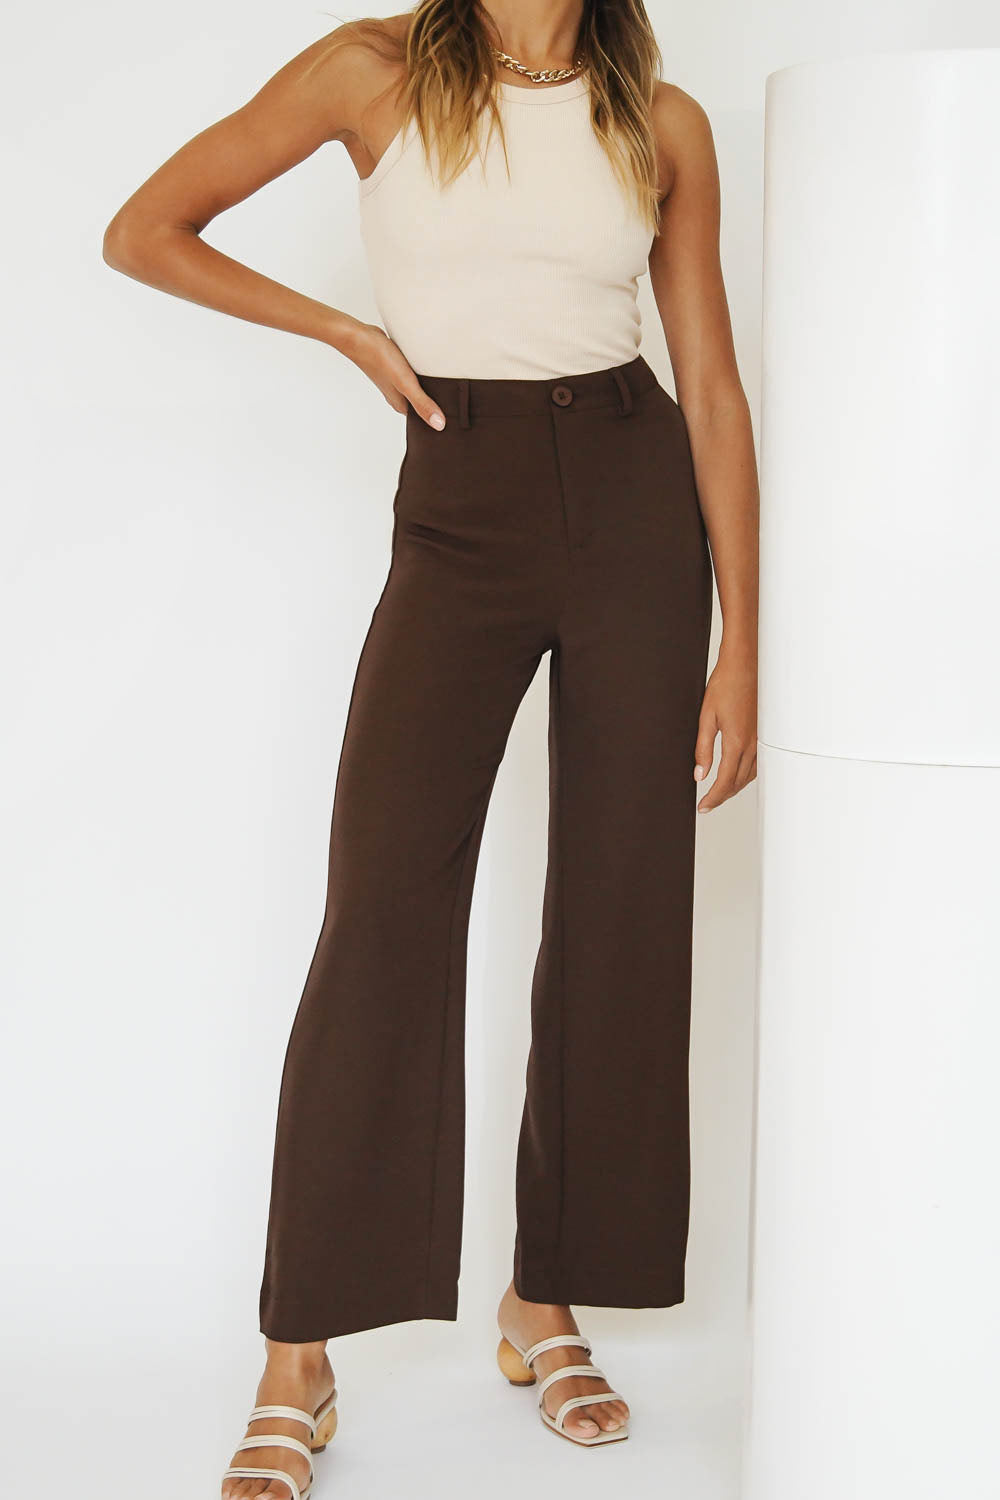 Her Moment Pants // Chocolate